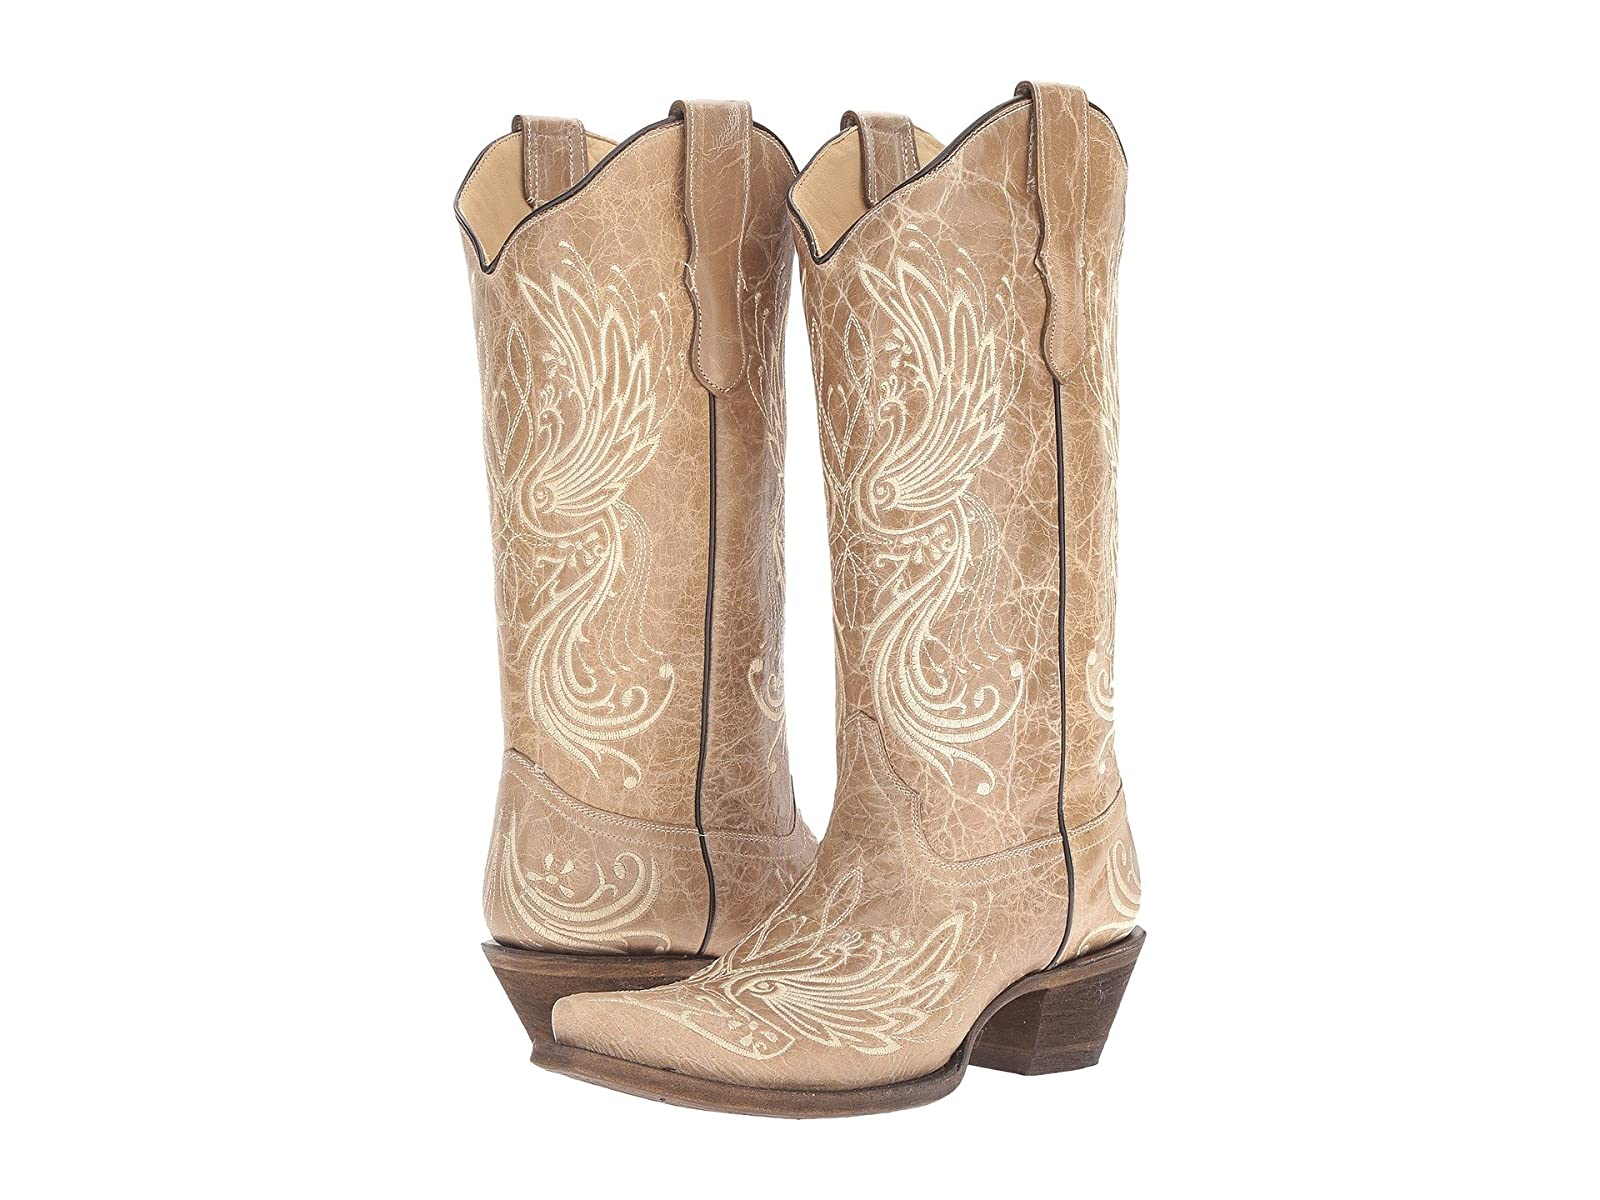 Corral Boots E1035Affordable and distinctive shoes